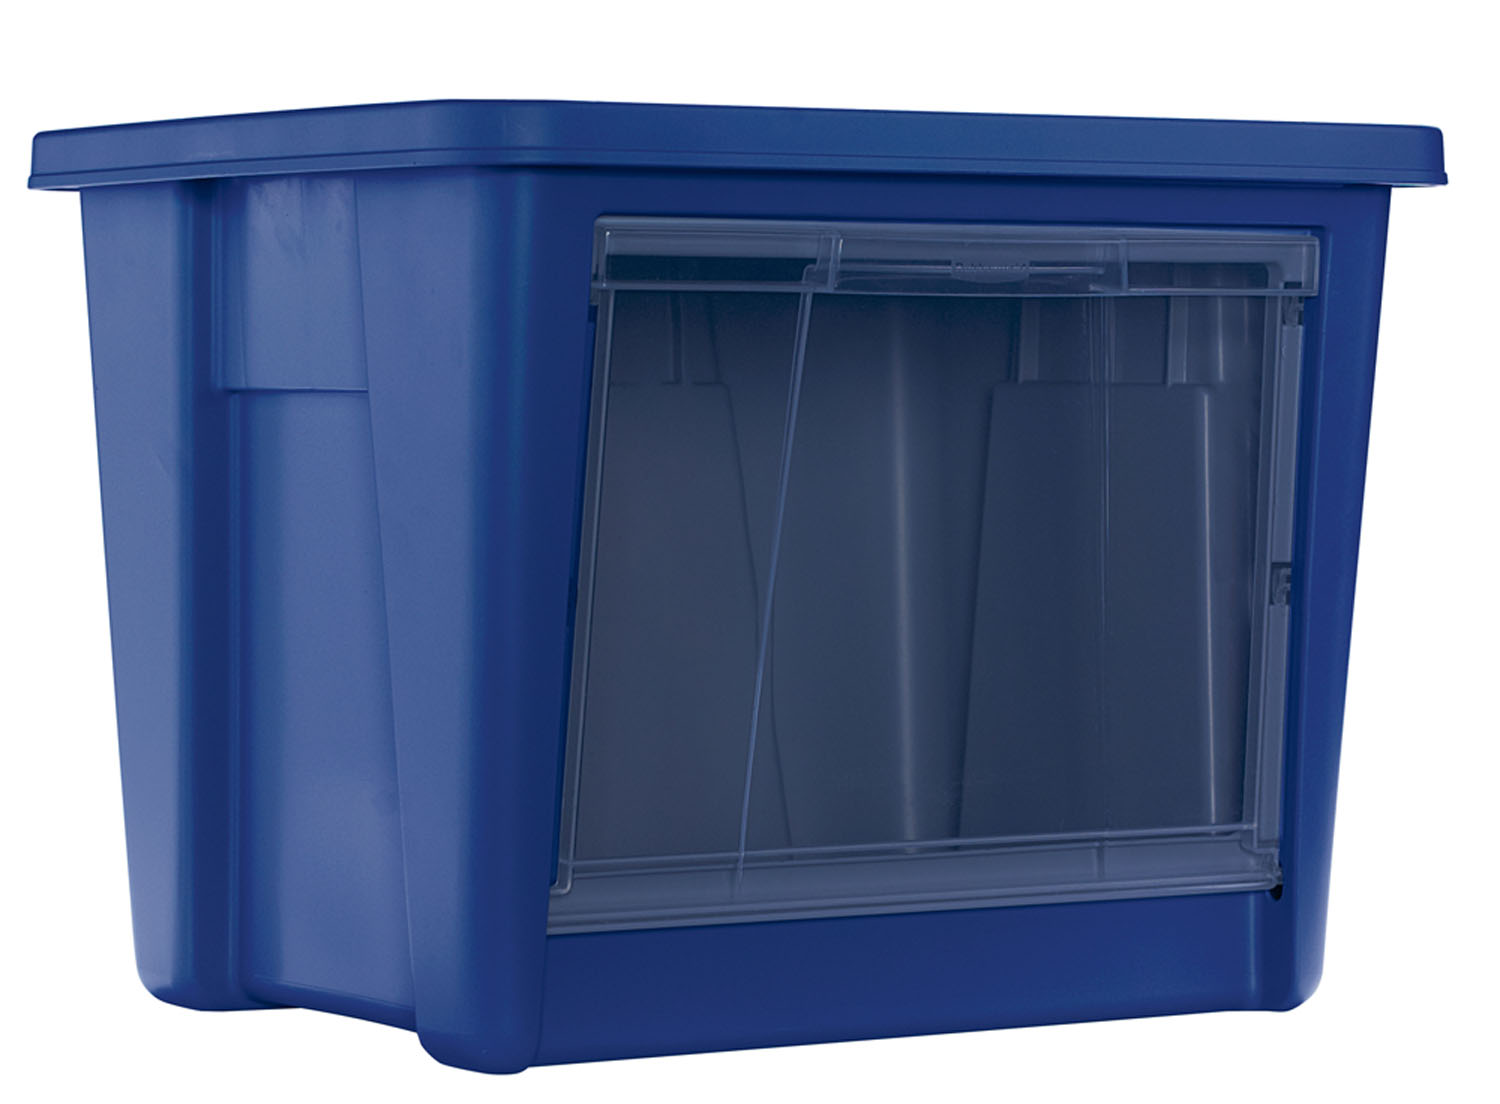 A Window to Your World: Rubbermaid All Access Organizers Helps Re-Organize Your Spaces! Win 4 of Your Own, ARV of $70!